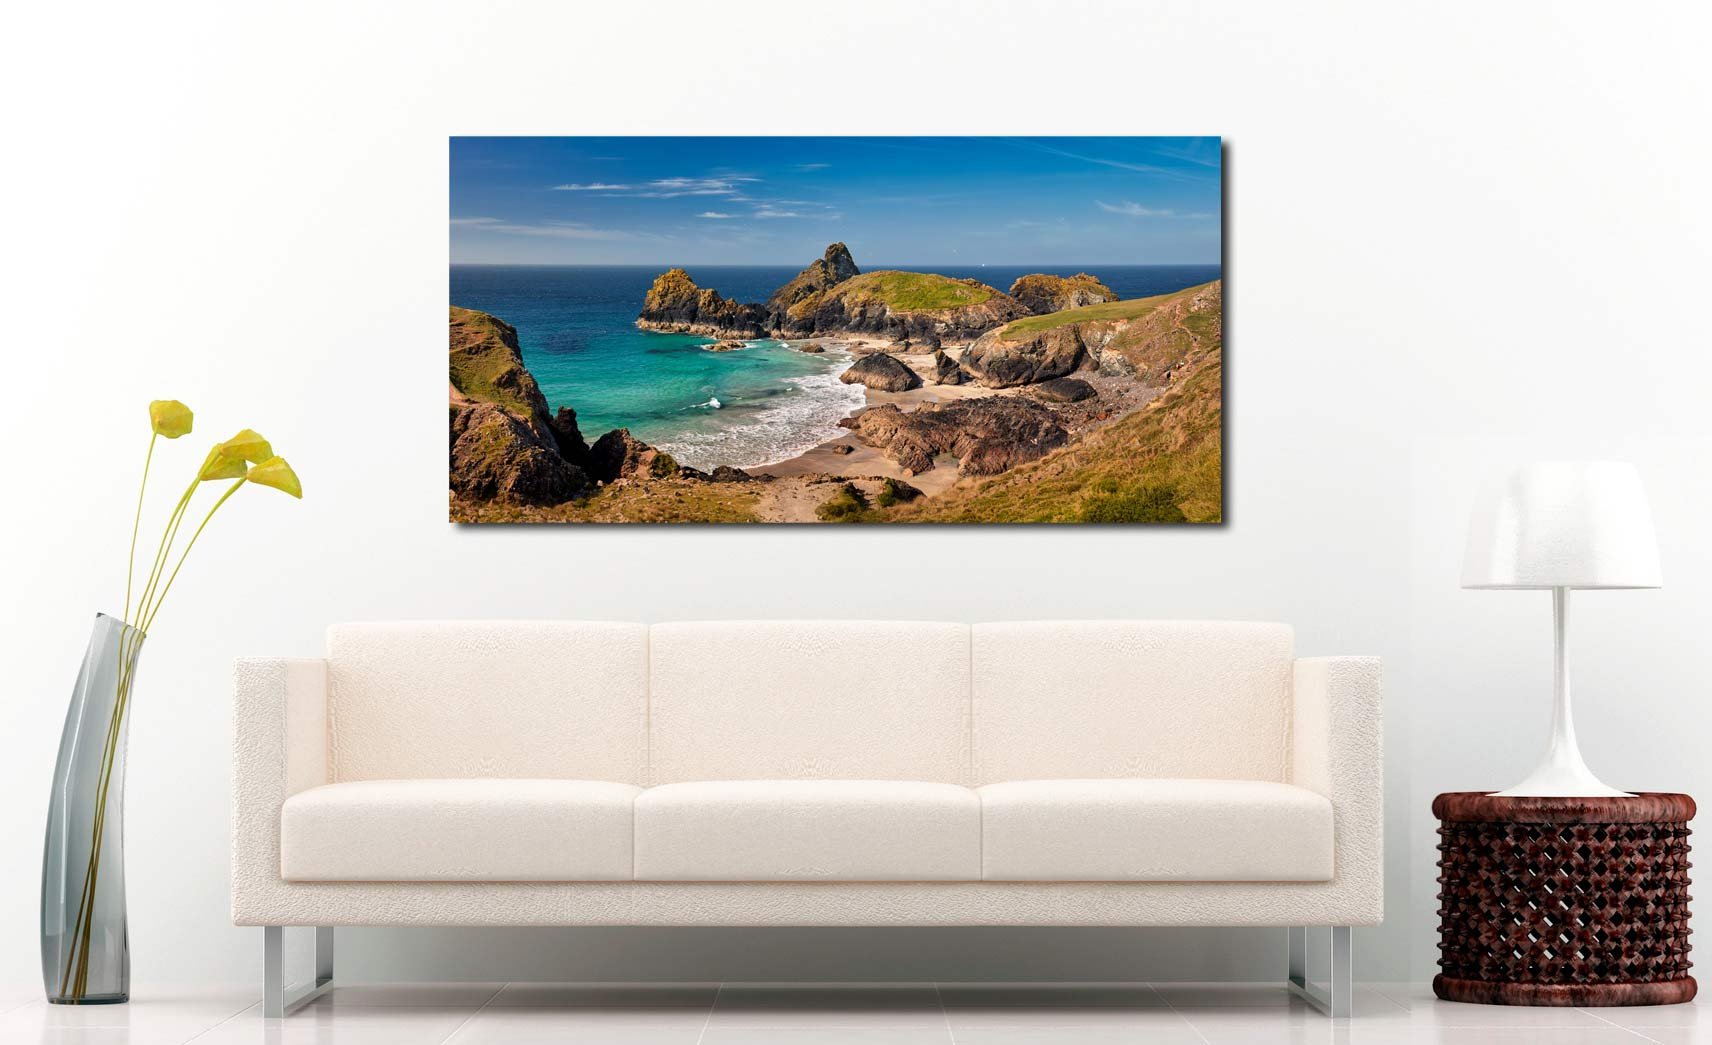 Kynance Cove Tropical Waters - Print Aluminium Backing With Acrylic Glazing on Wall